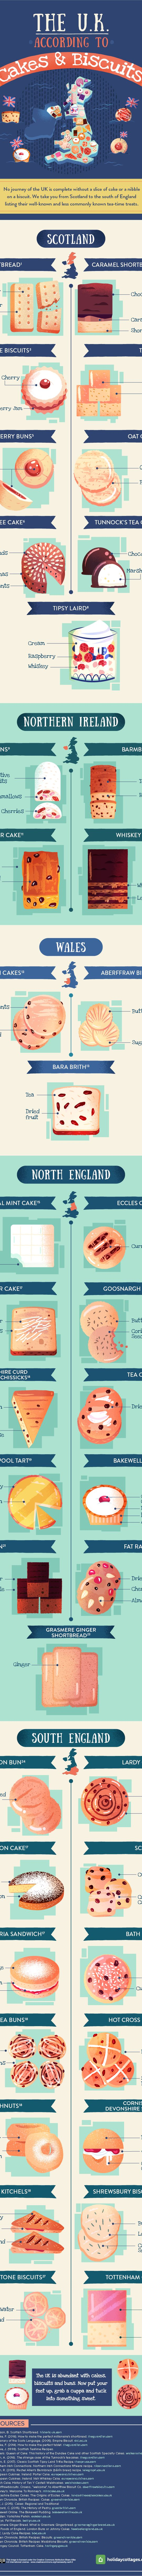 Cakes and biscuits of the UK a perfect foodie infographic of British cakes and biscuits.that will tanatlise your tastebuds. Lovely teatime treats. Click through to share your favourite! For all of you sweet tooth cake lovers